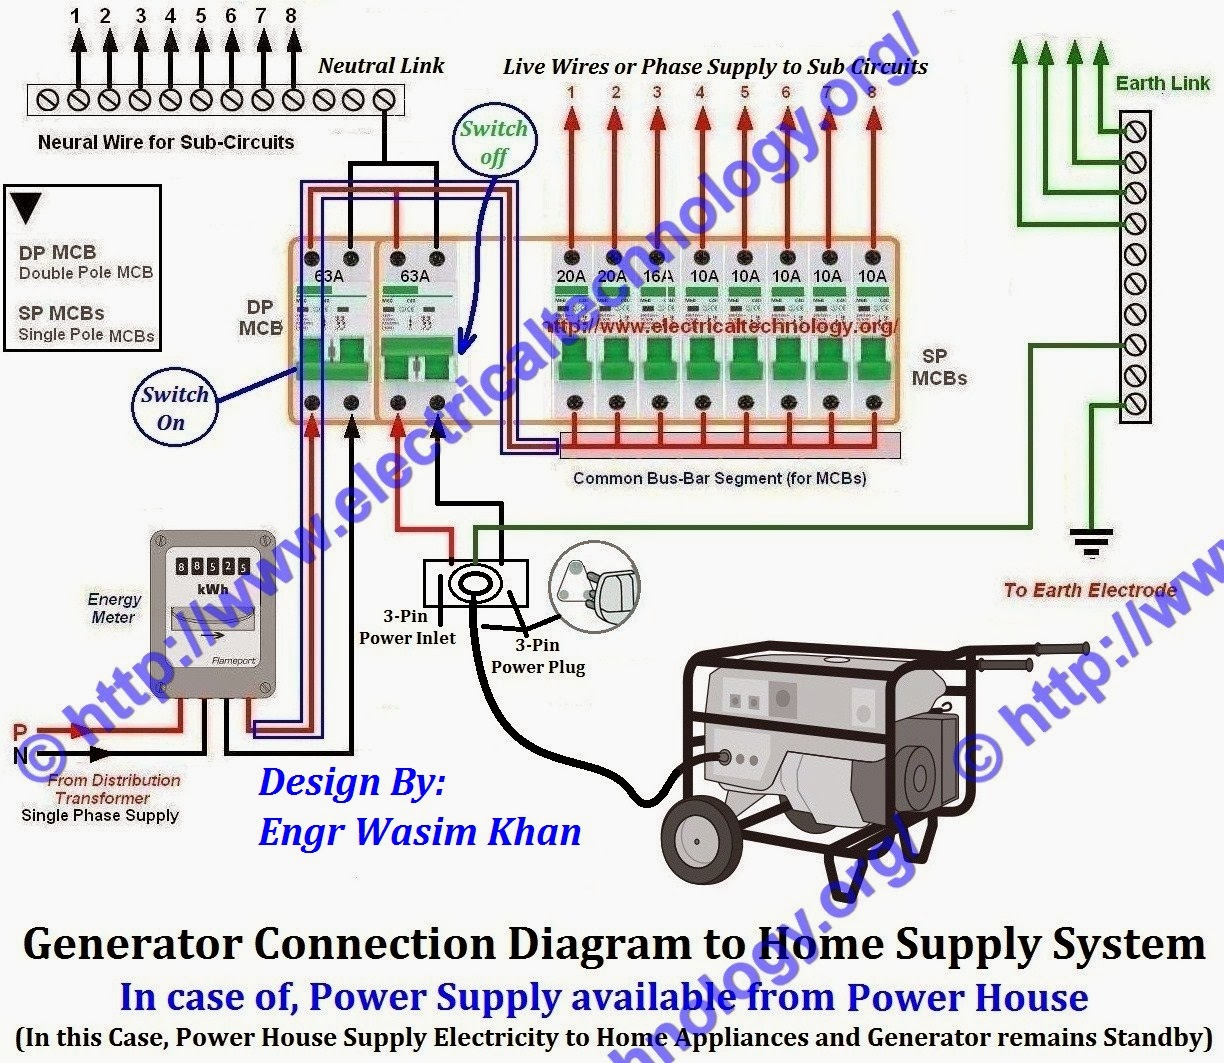 wiring diagrams maker the wiring diagram home wiring diagram maker home wiring diagrams for car or truck wiring